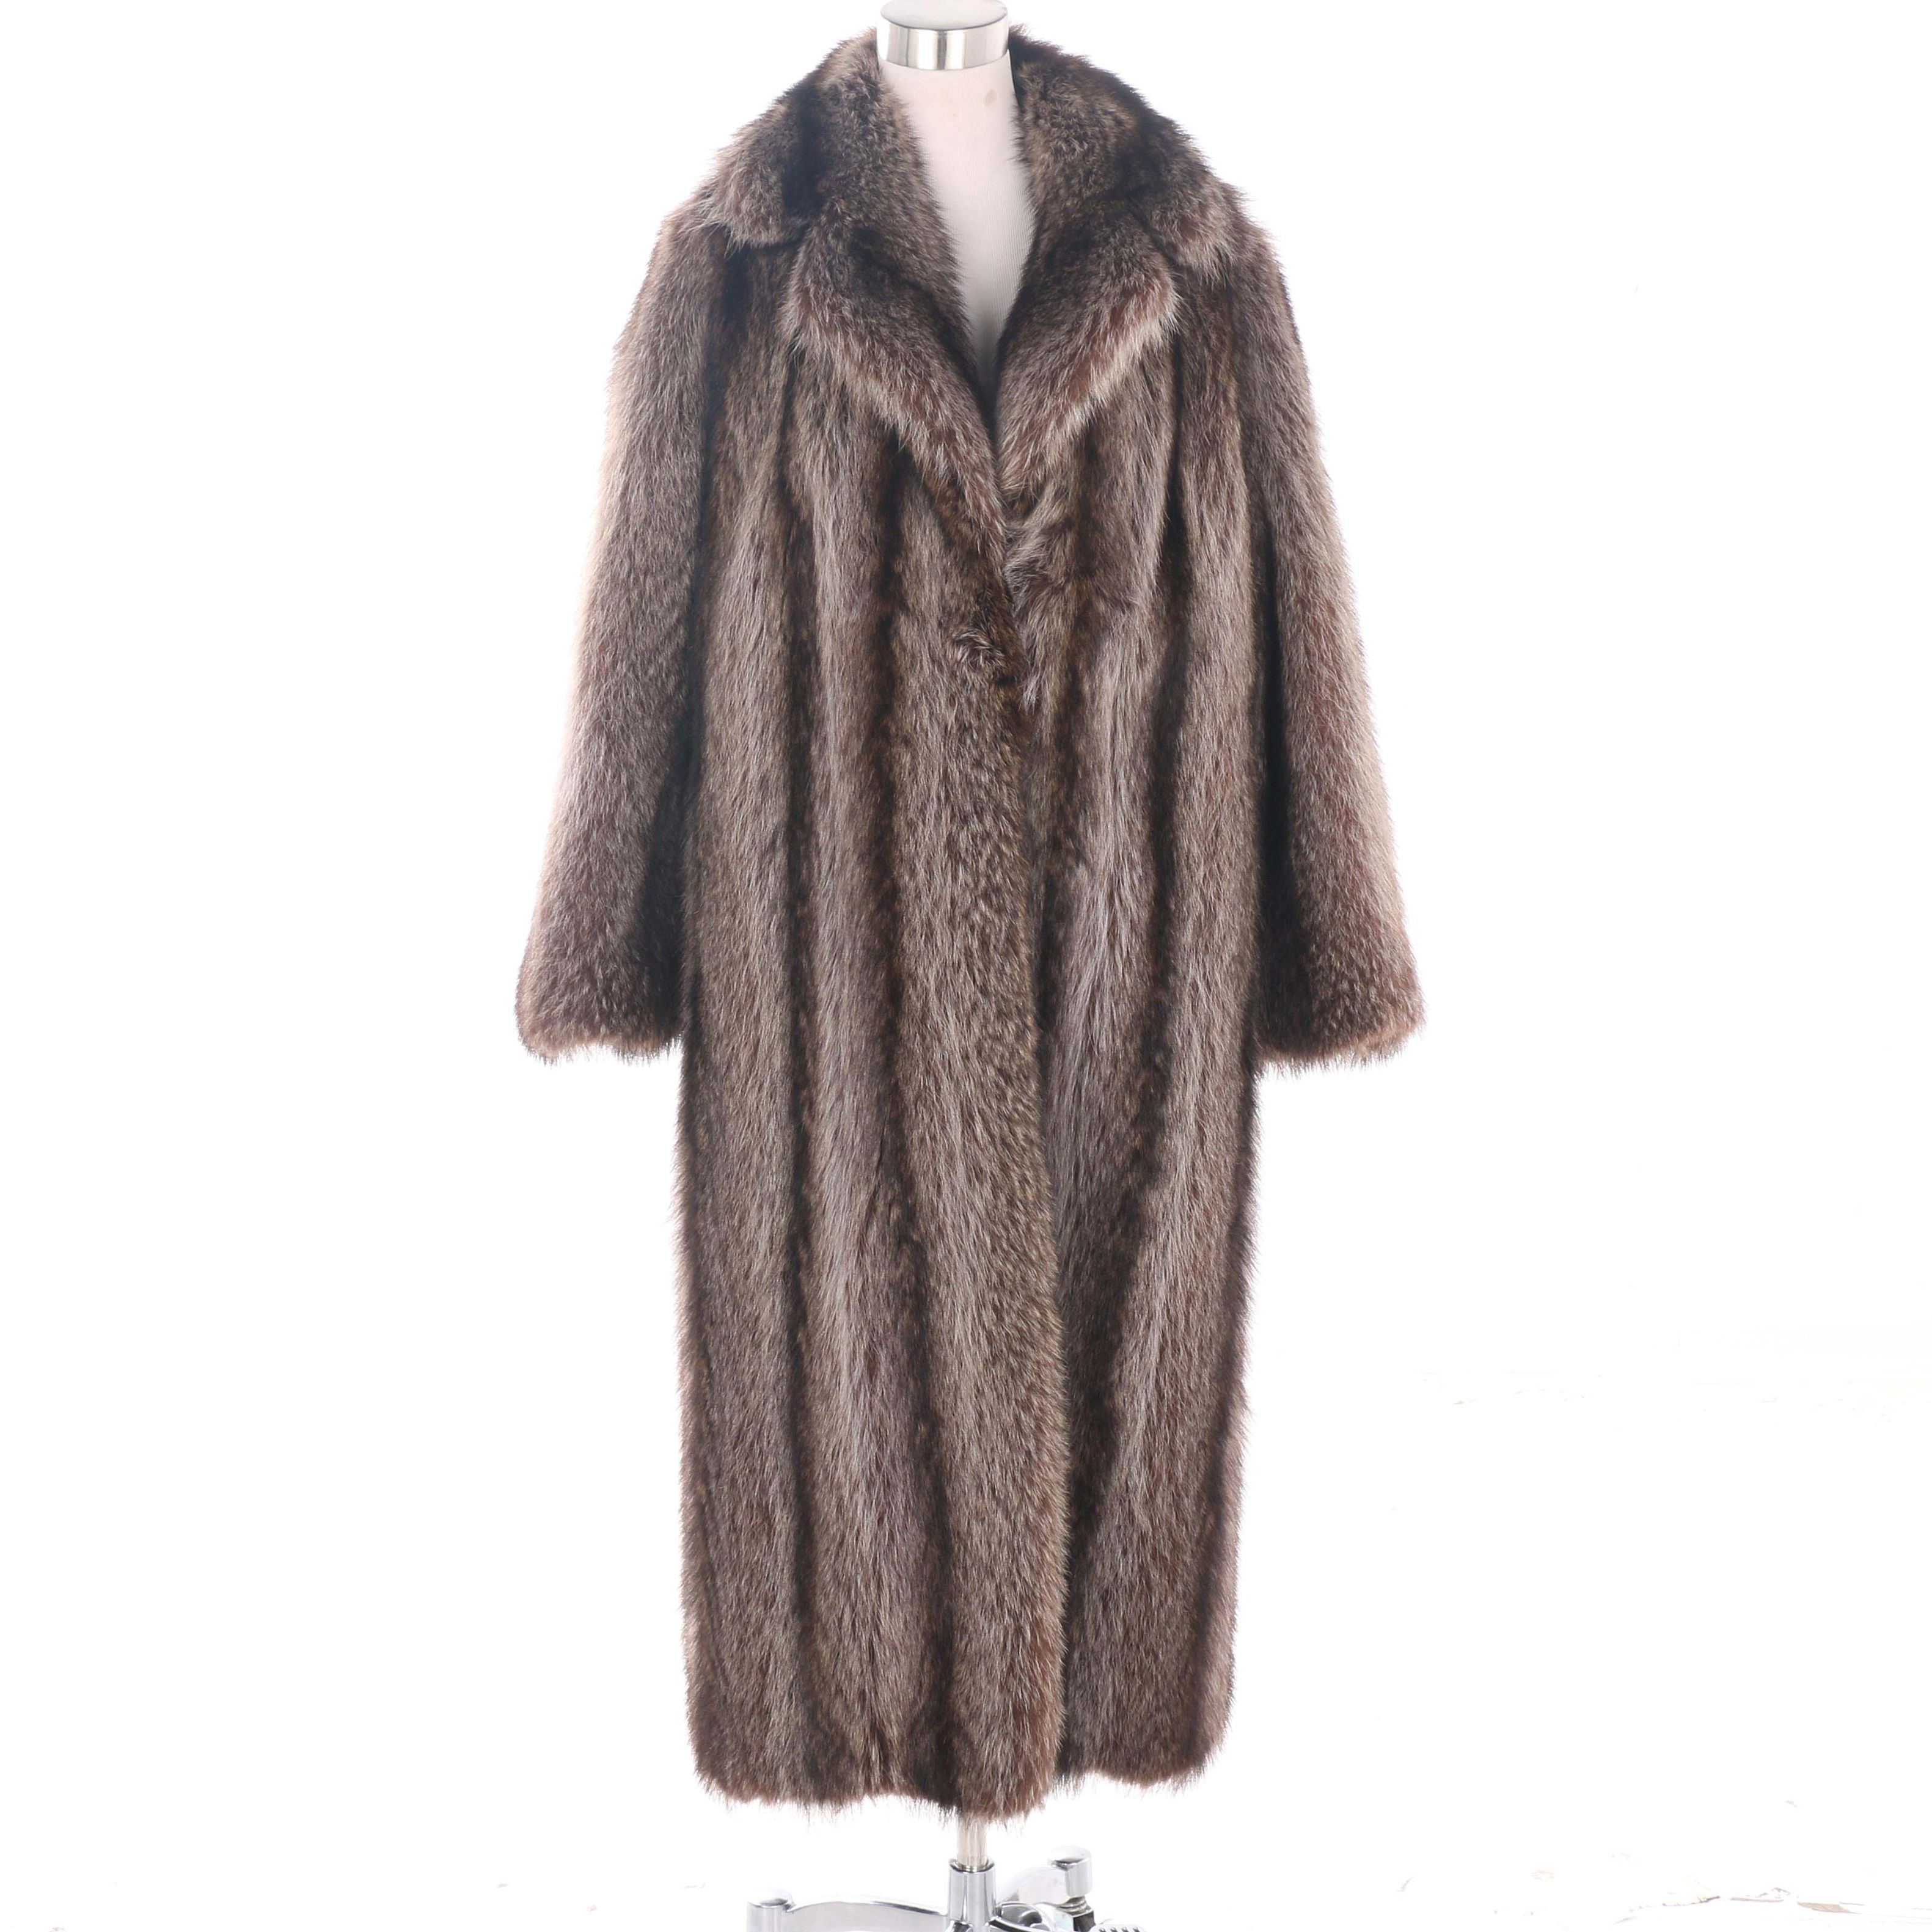 Vintage Sklar Furs Raccoon Fur Coat